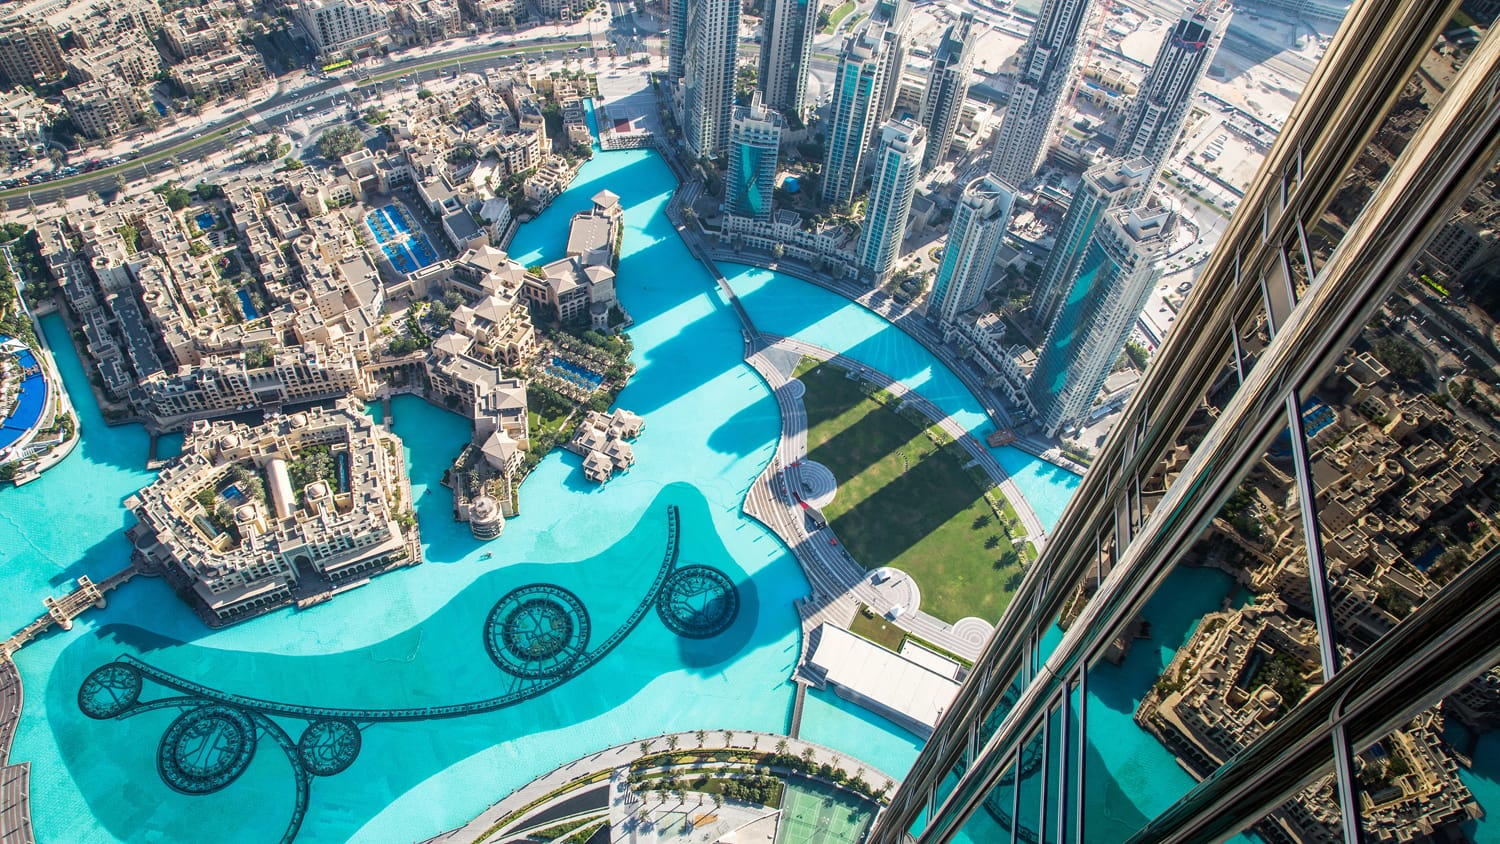 View from Burj Khalifa in Dubai, UAE